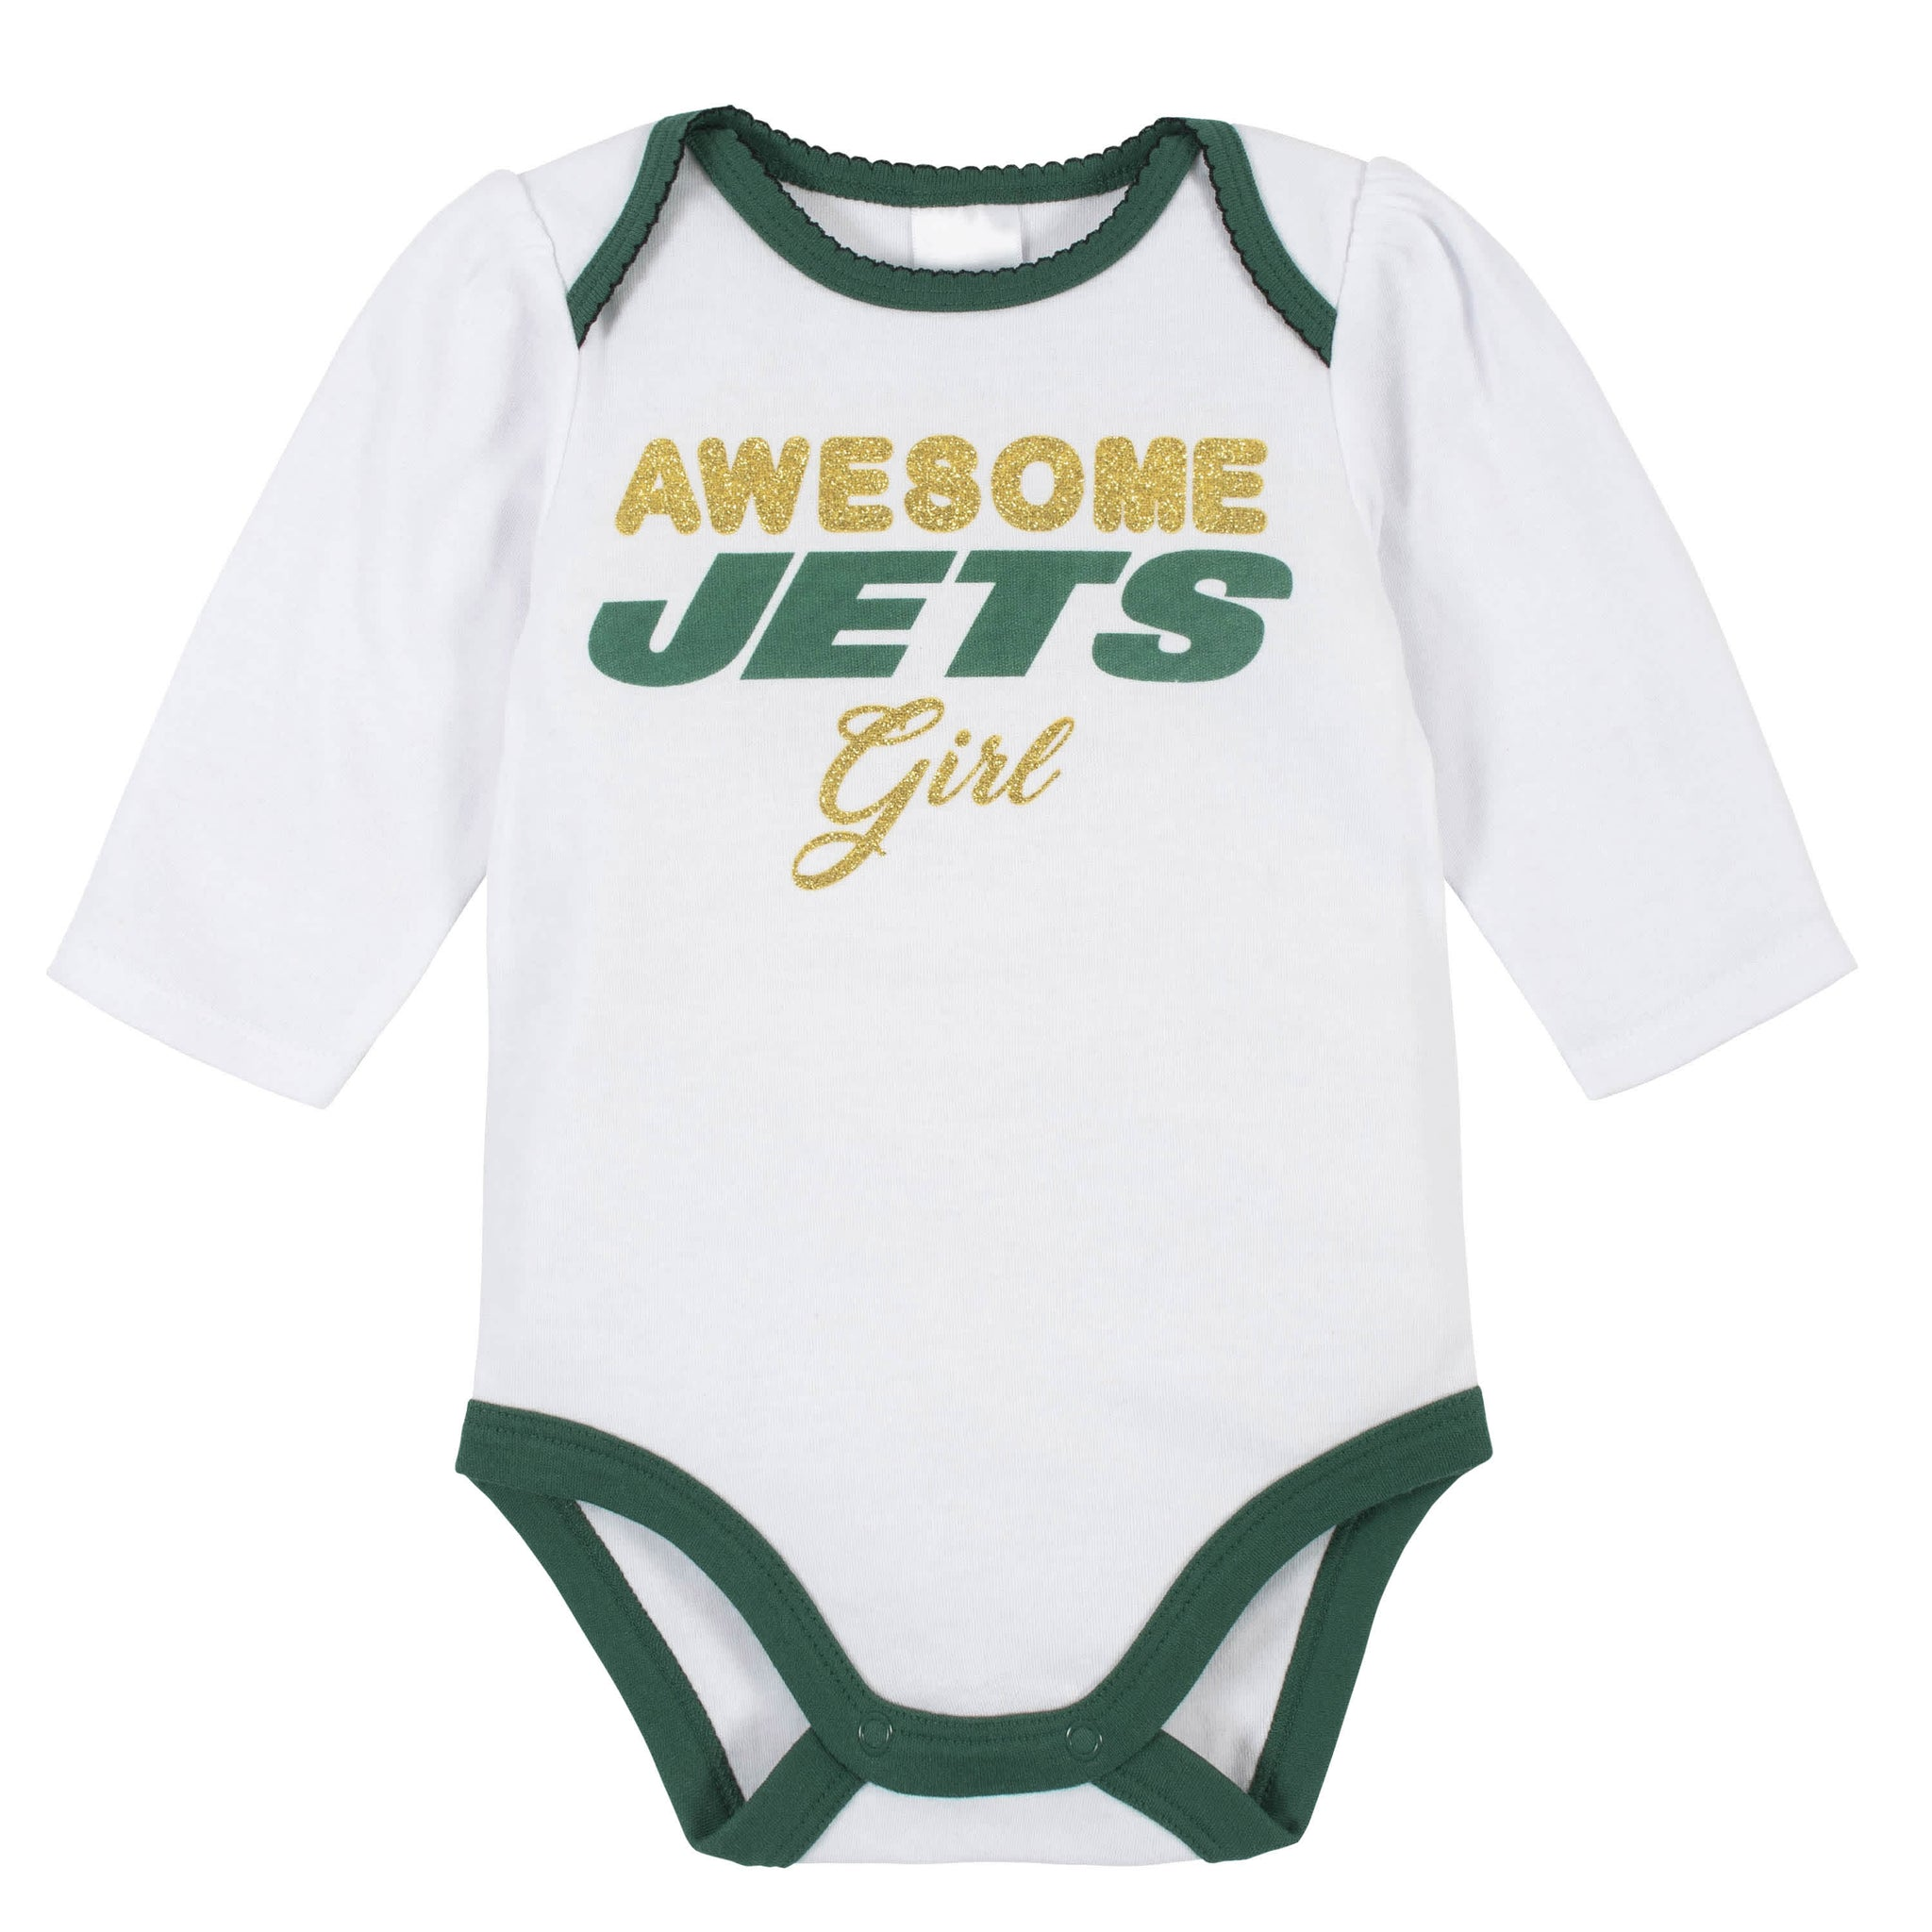 New York Jets Baby Girls Bodysuit, Pant, and Cap Set-Gerber Childrenswear